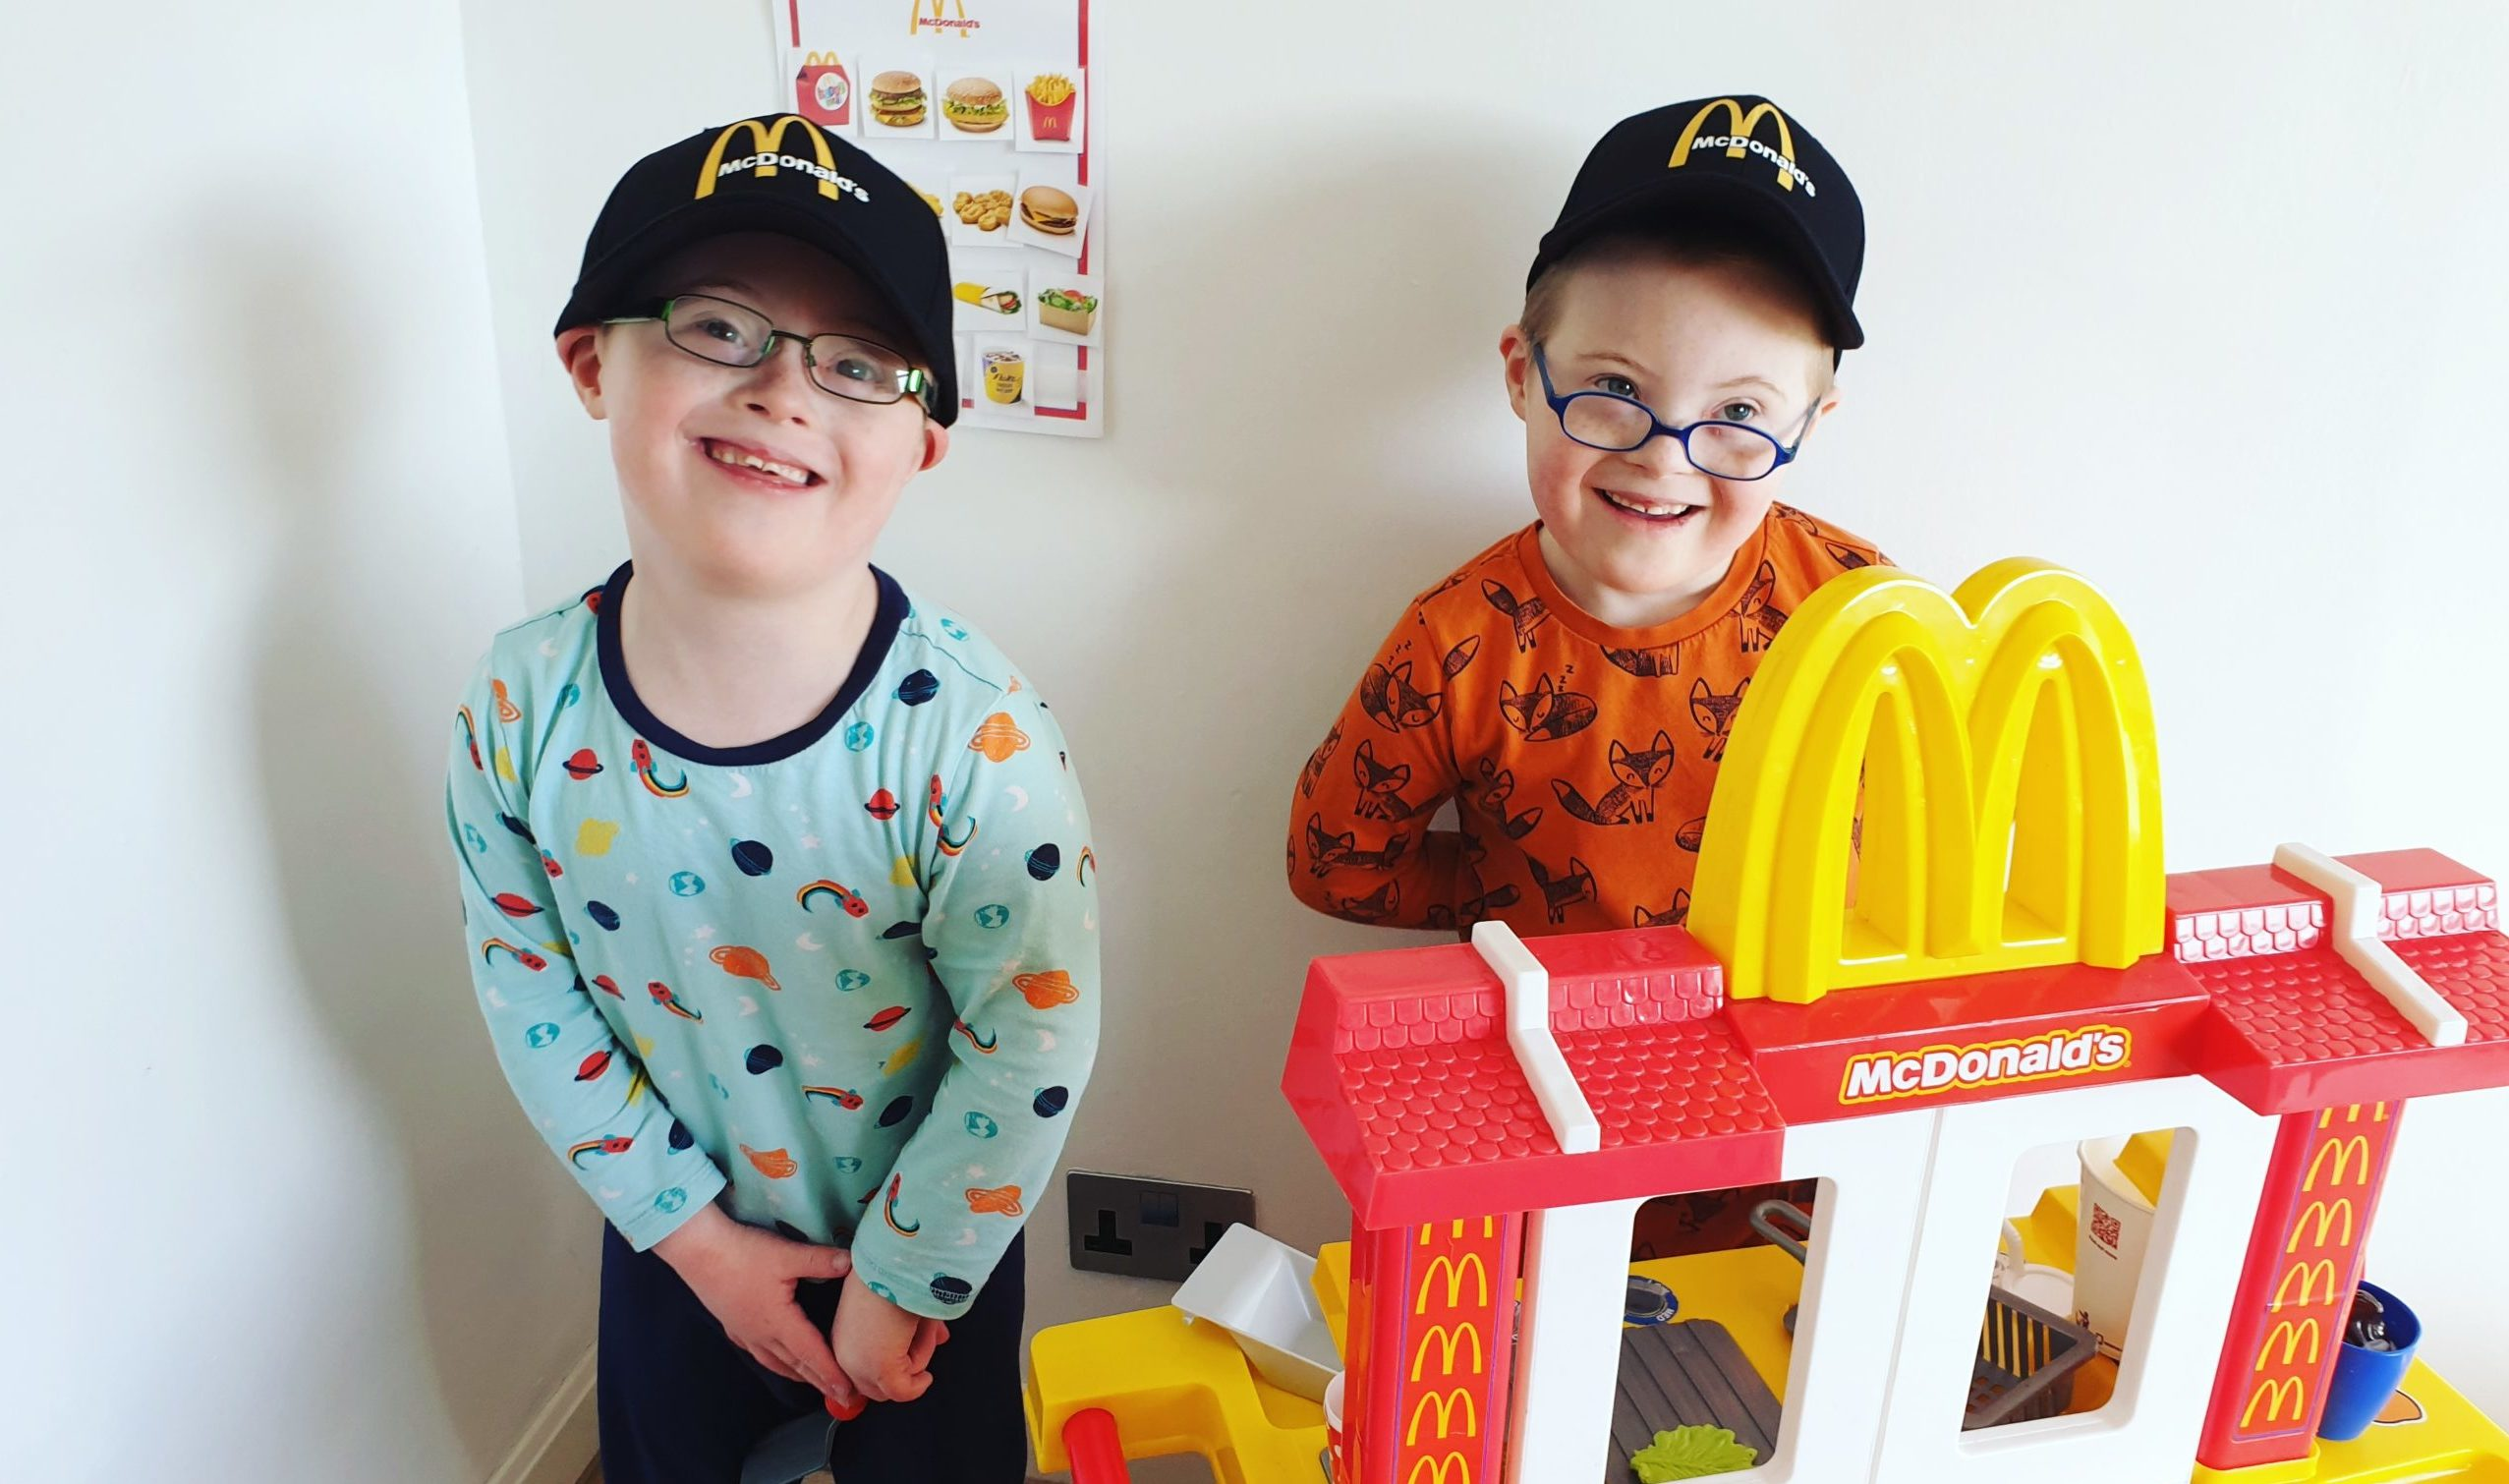 Ollie, left, and Cameron Scougal enjoyed a home 'drive-thru' McDonalds during lockdown as a 7th birthday treat.